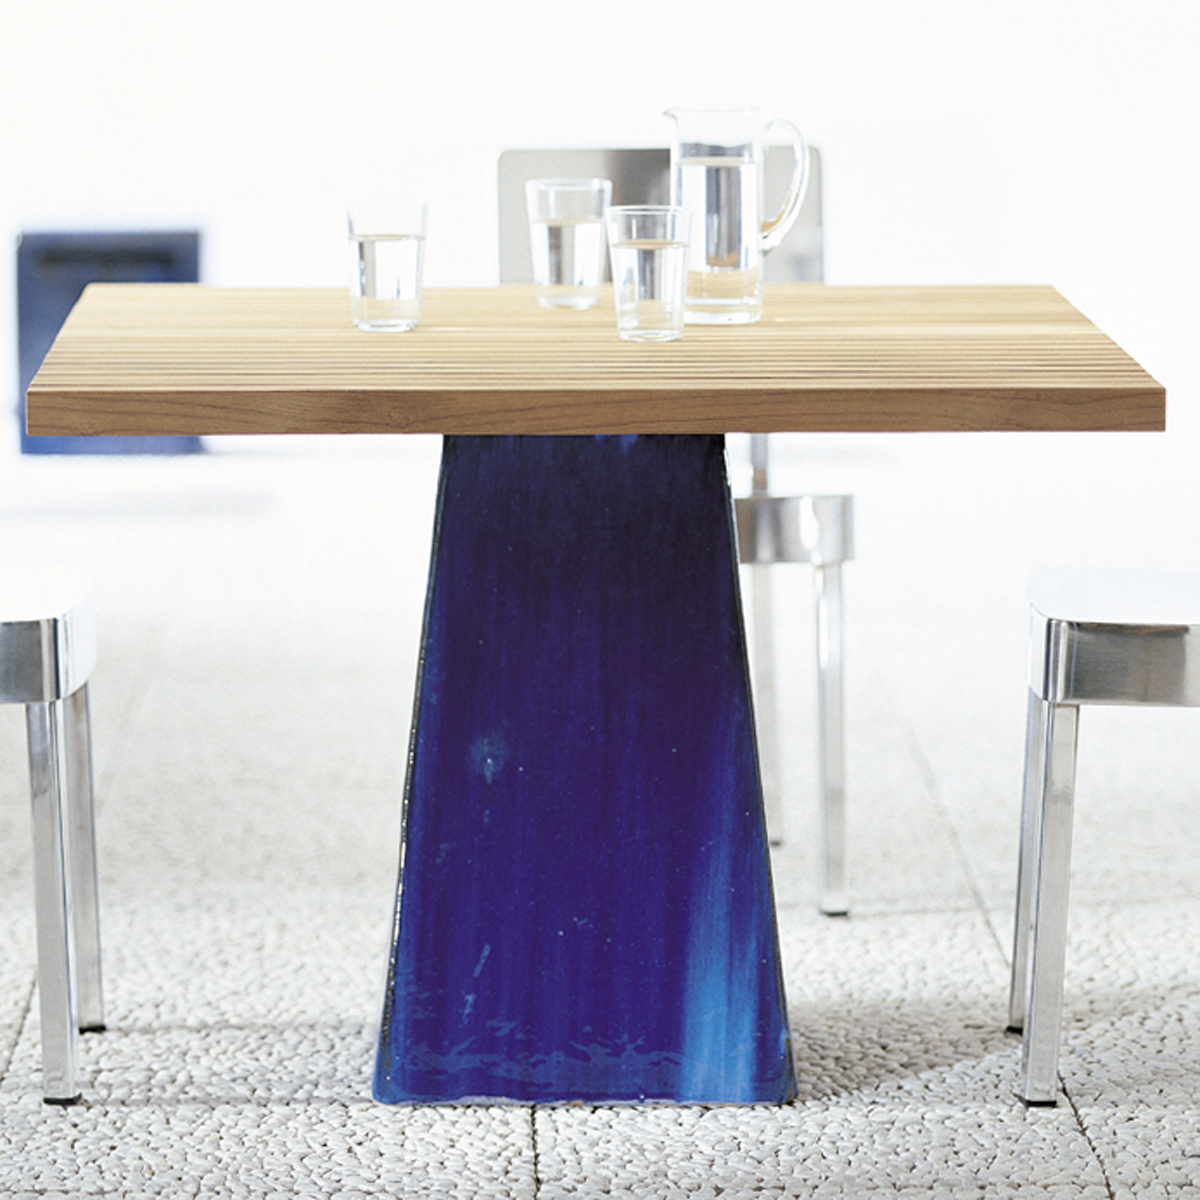 gervasoniinout 35/36 - Table with teak slats top, available in white.